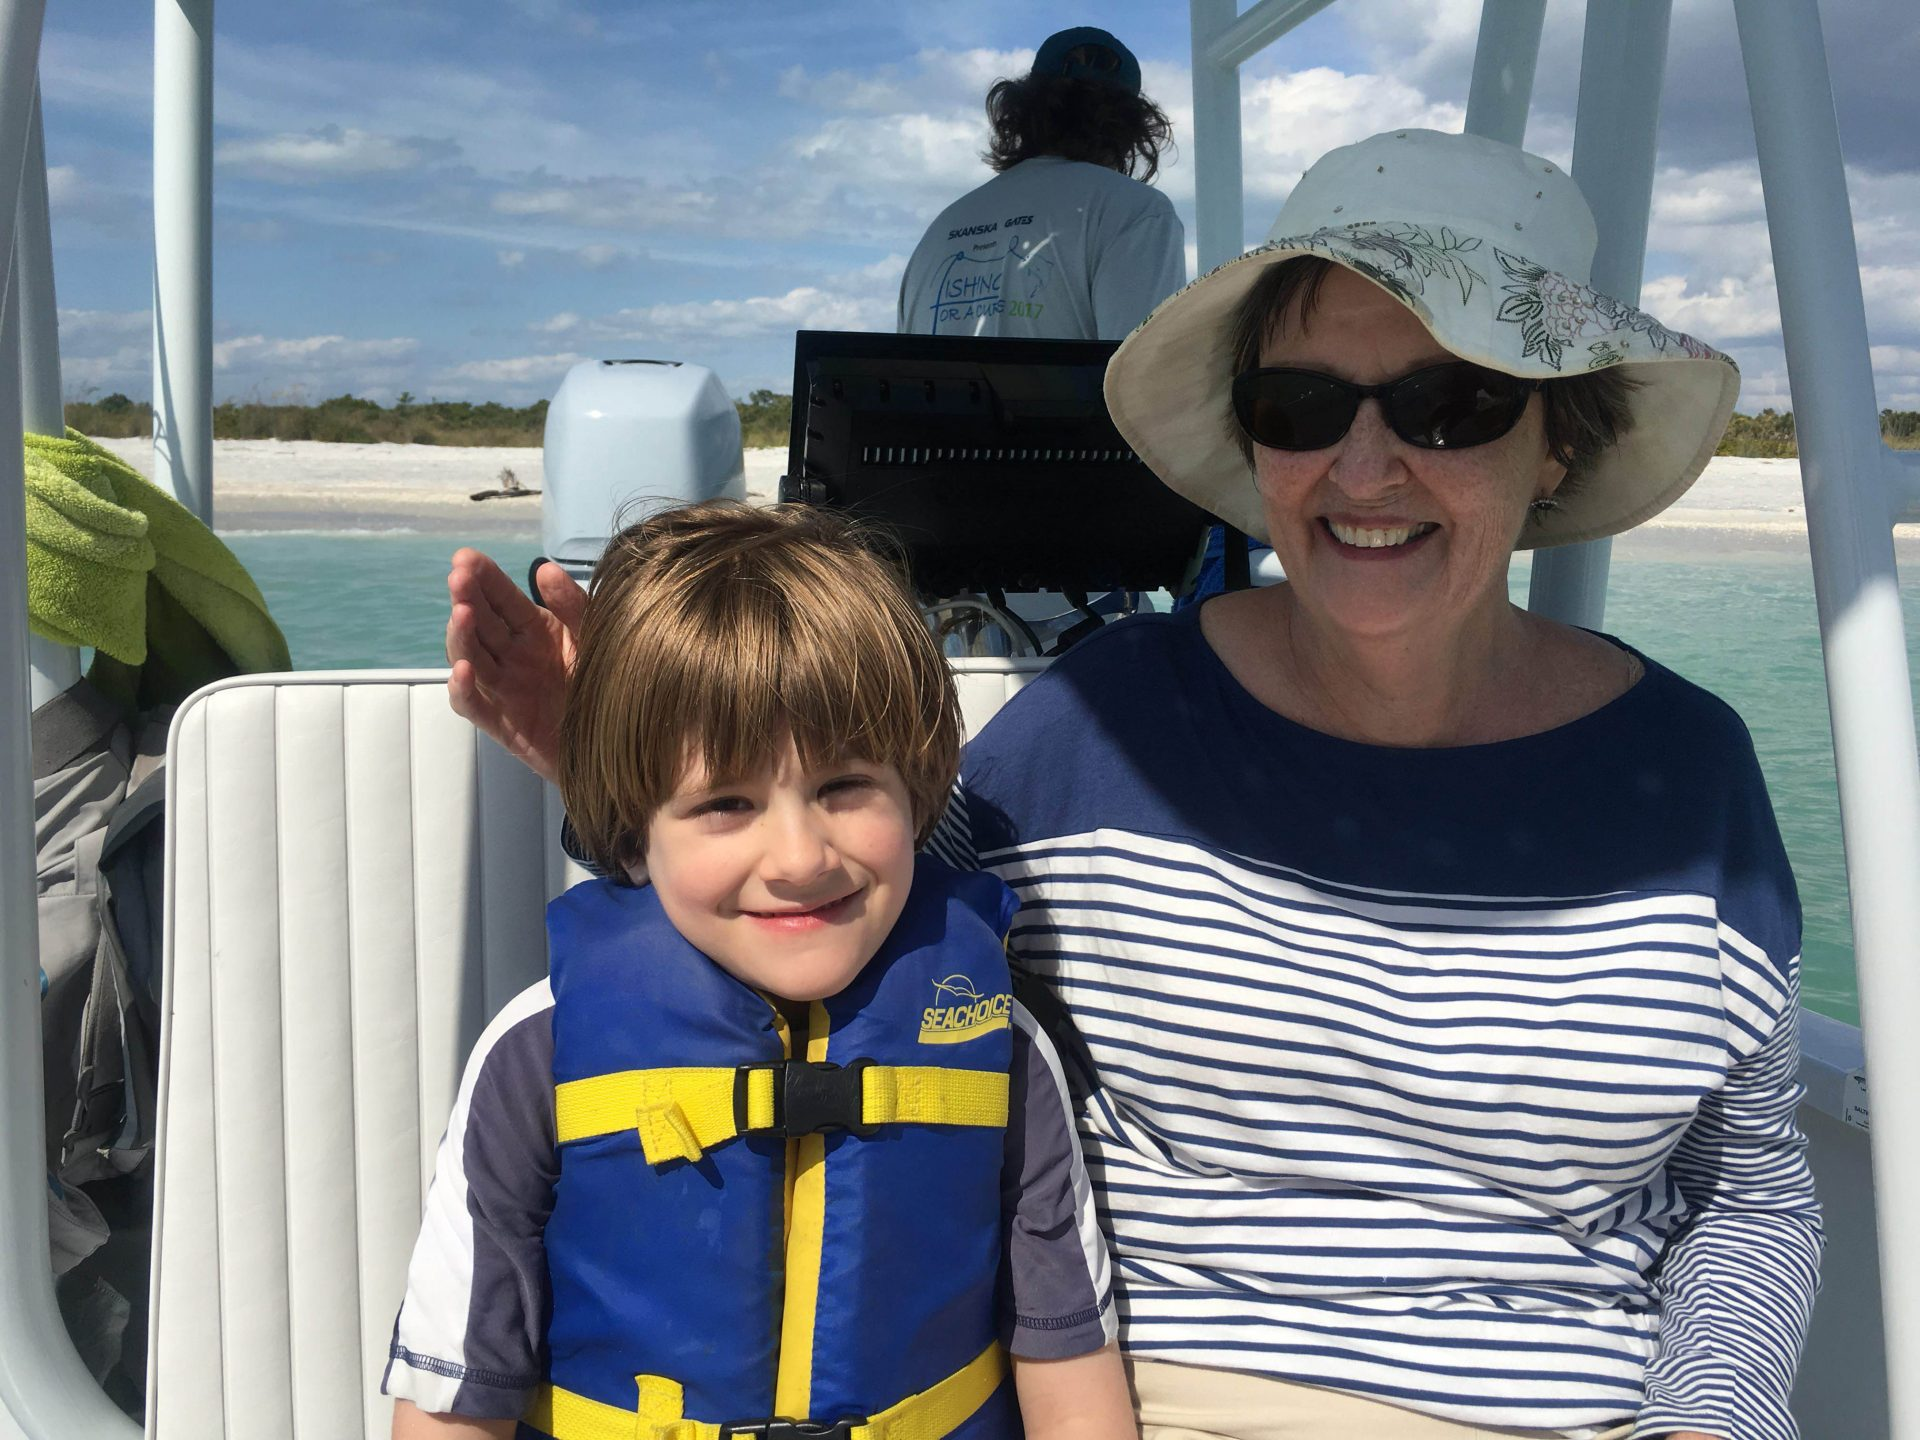 Shelling Boat Ride with my Mimi